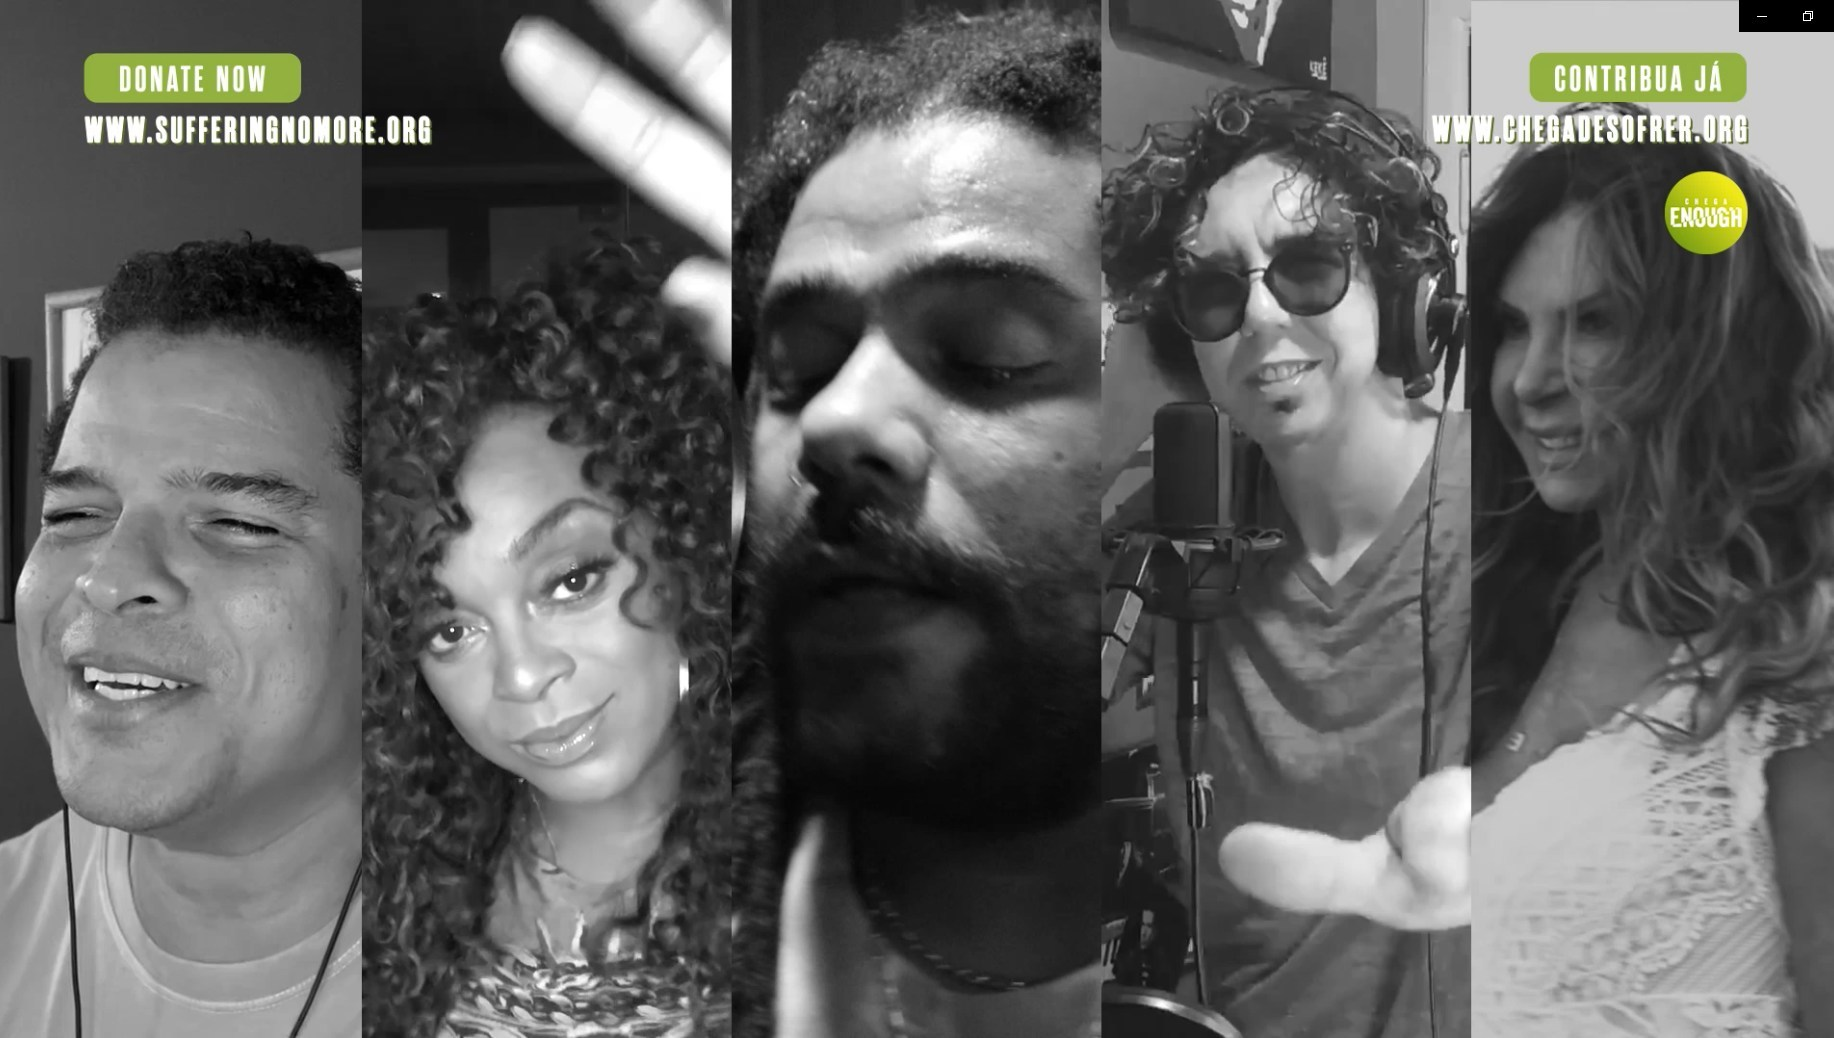 Celebrity Musicians Have Banded Together to Launch a Fundraising Campaign for Struggling Brazilian Immigrants in the Arts, Events & Entertainment Industries